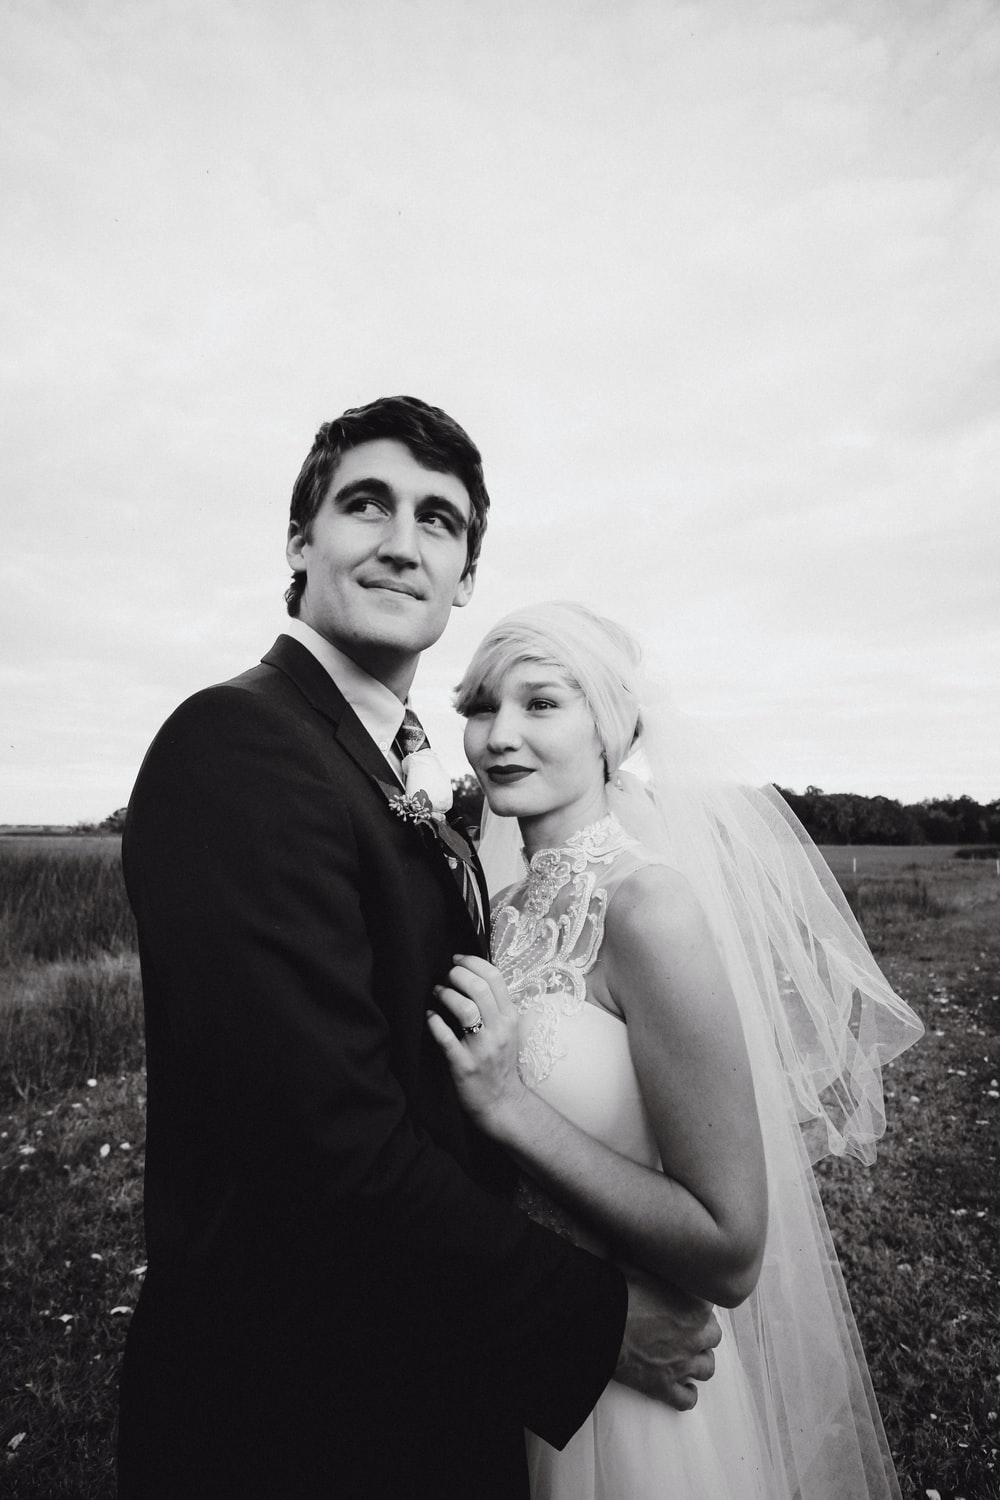 grayscale photo of bride and groom